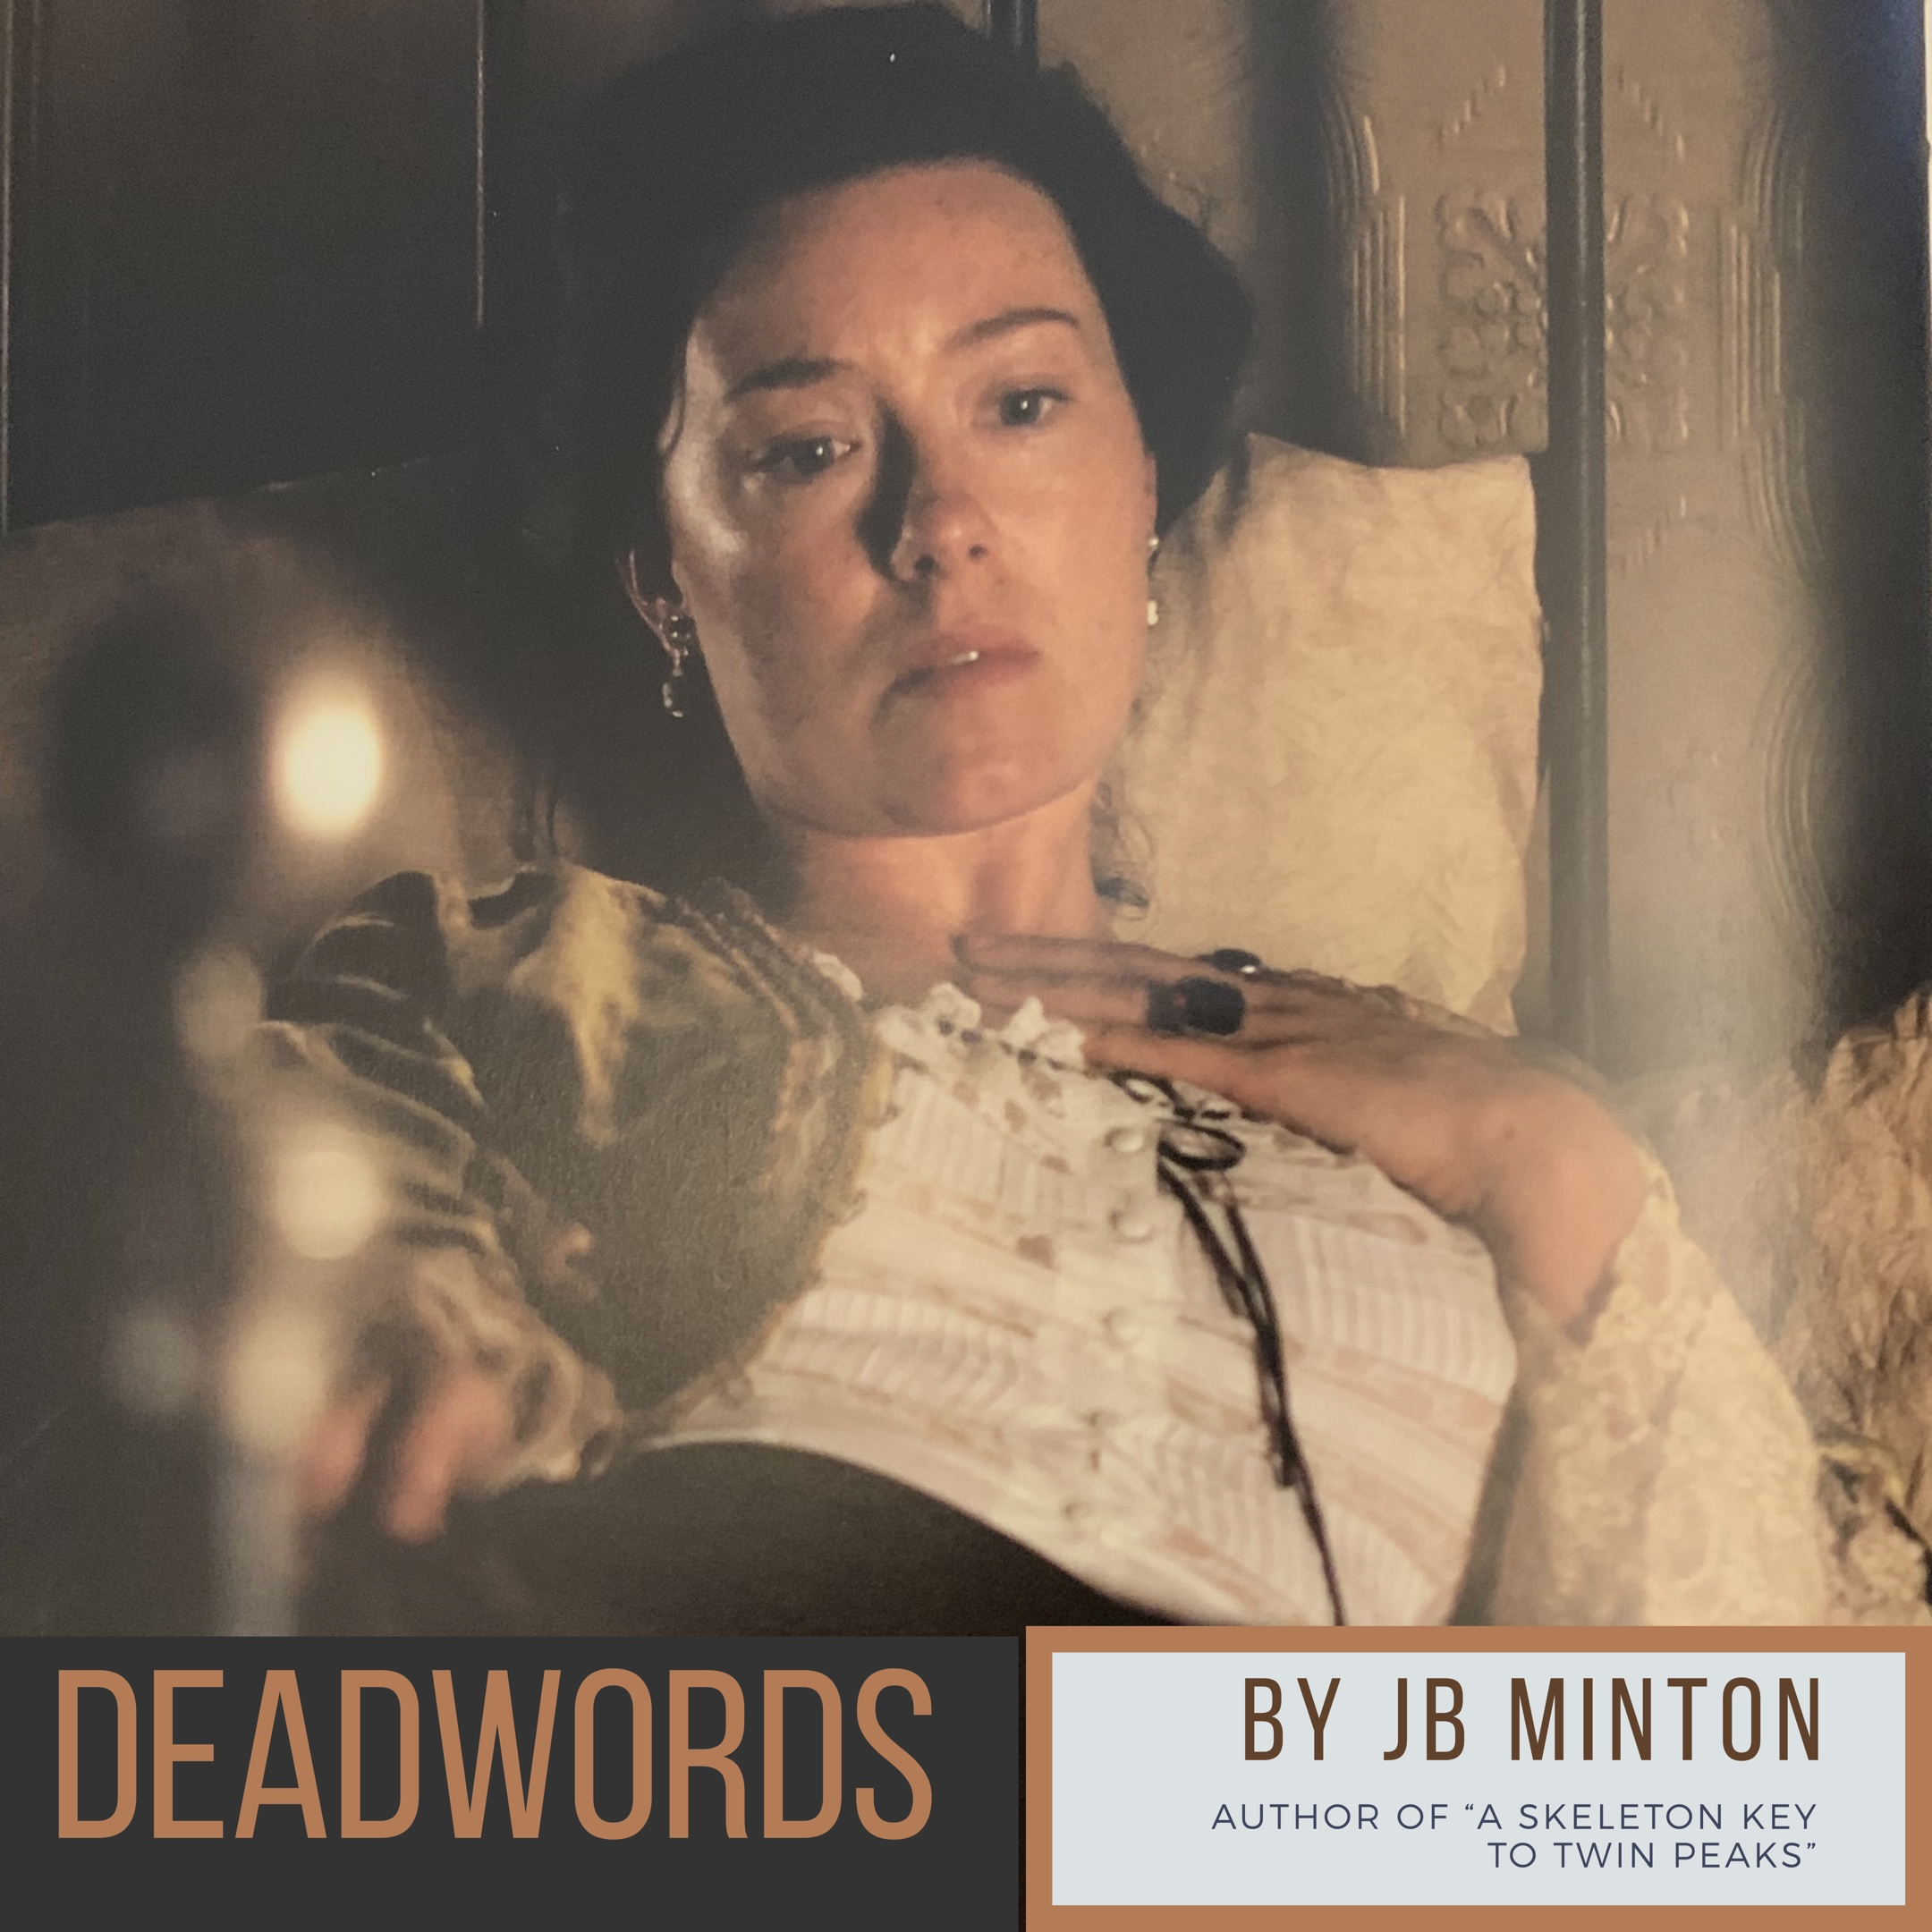 There are many tributaries in  Deadwood  and all of them are heartbreaking. Alma Garrett settles into the realization that she will never get what she wants from her life so she must take what she has been given.